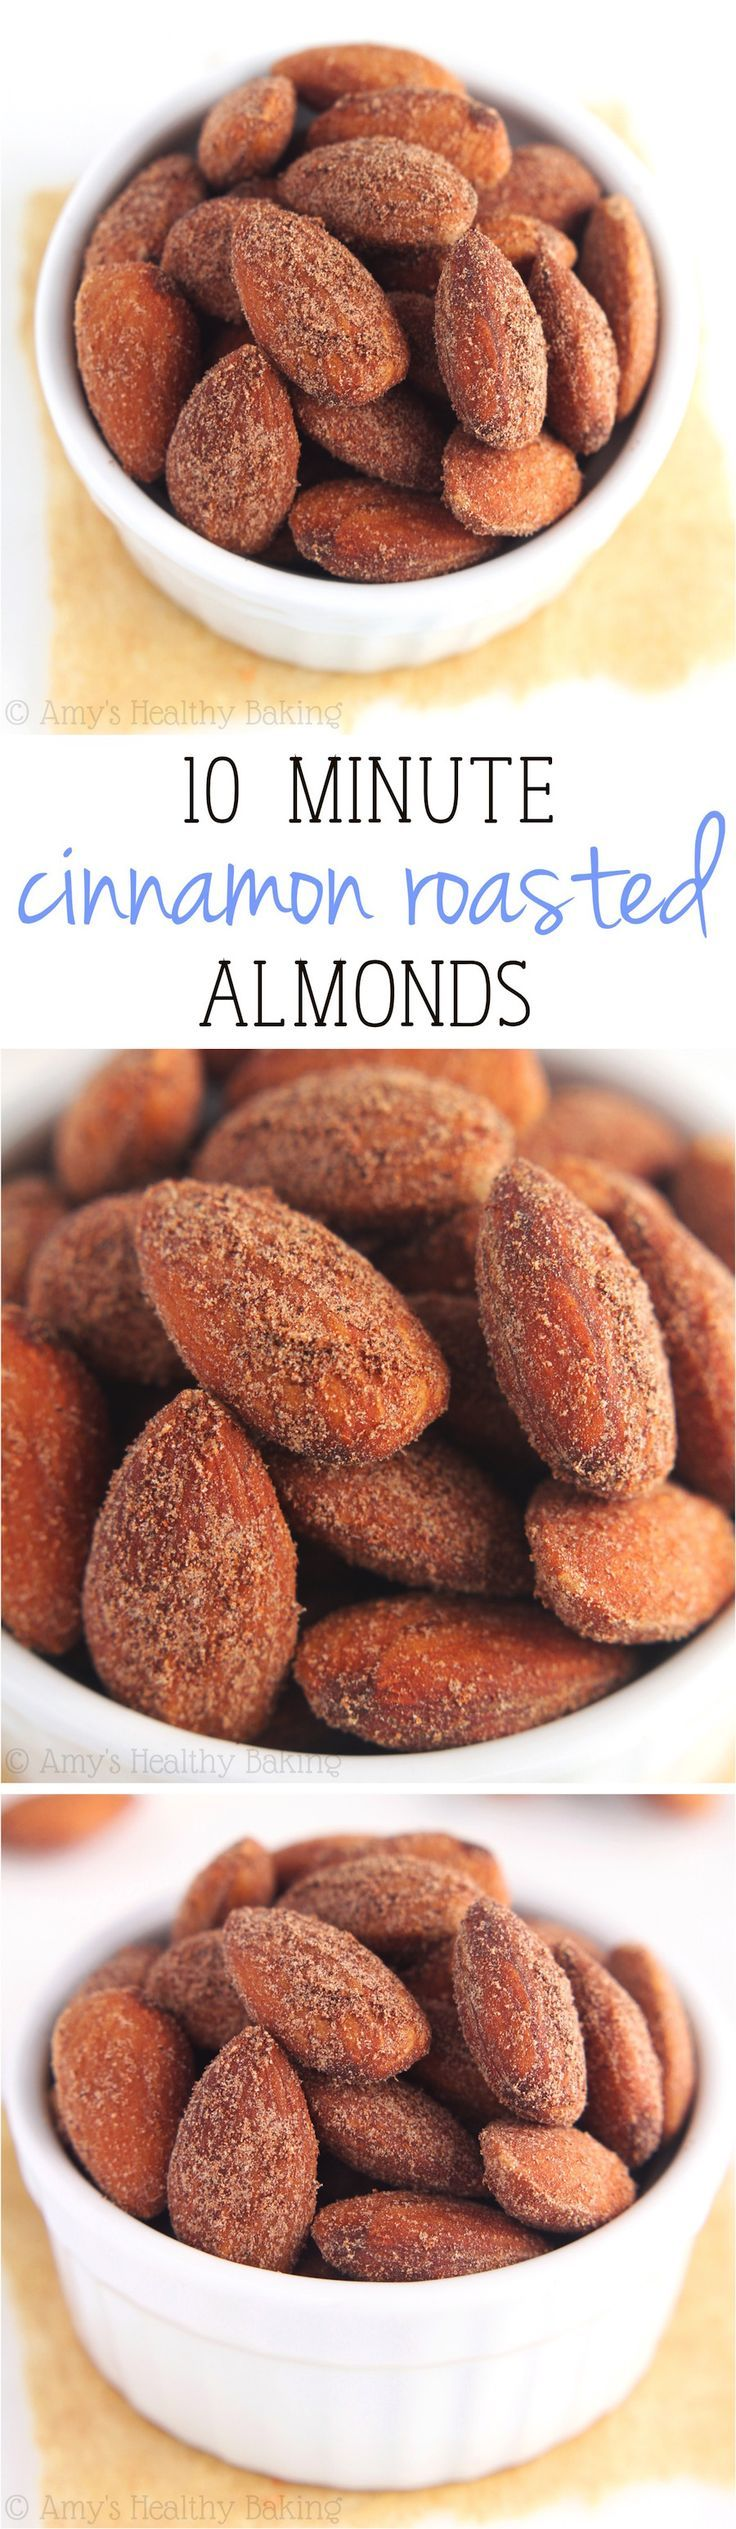 Cinnamon Roasted Almonds -- just 4 ingredients + 10 minutes to make this healthy, clean-eating snack! SO much better than store-bought!